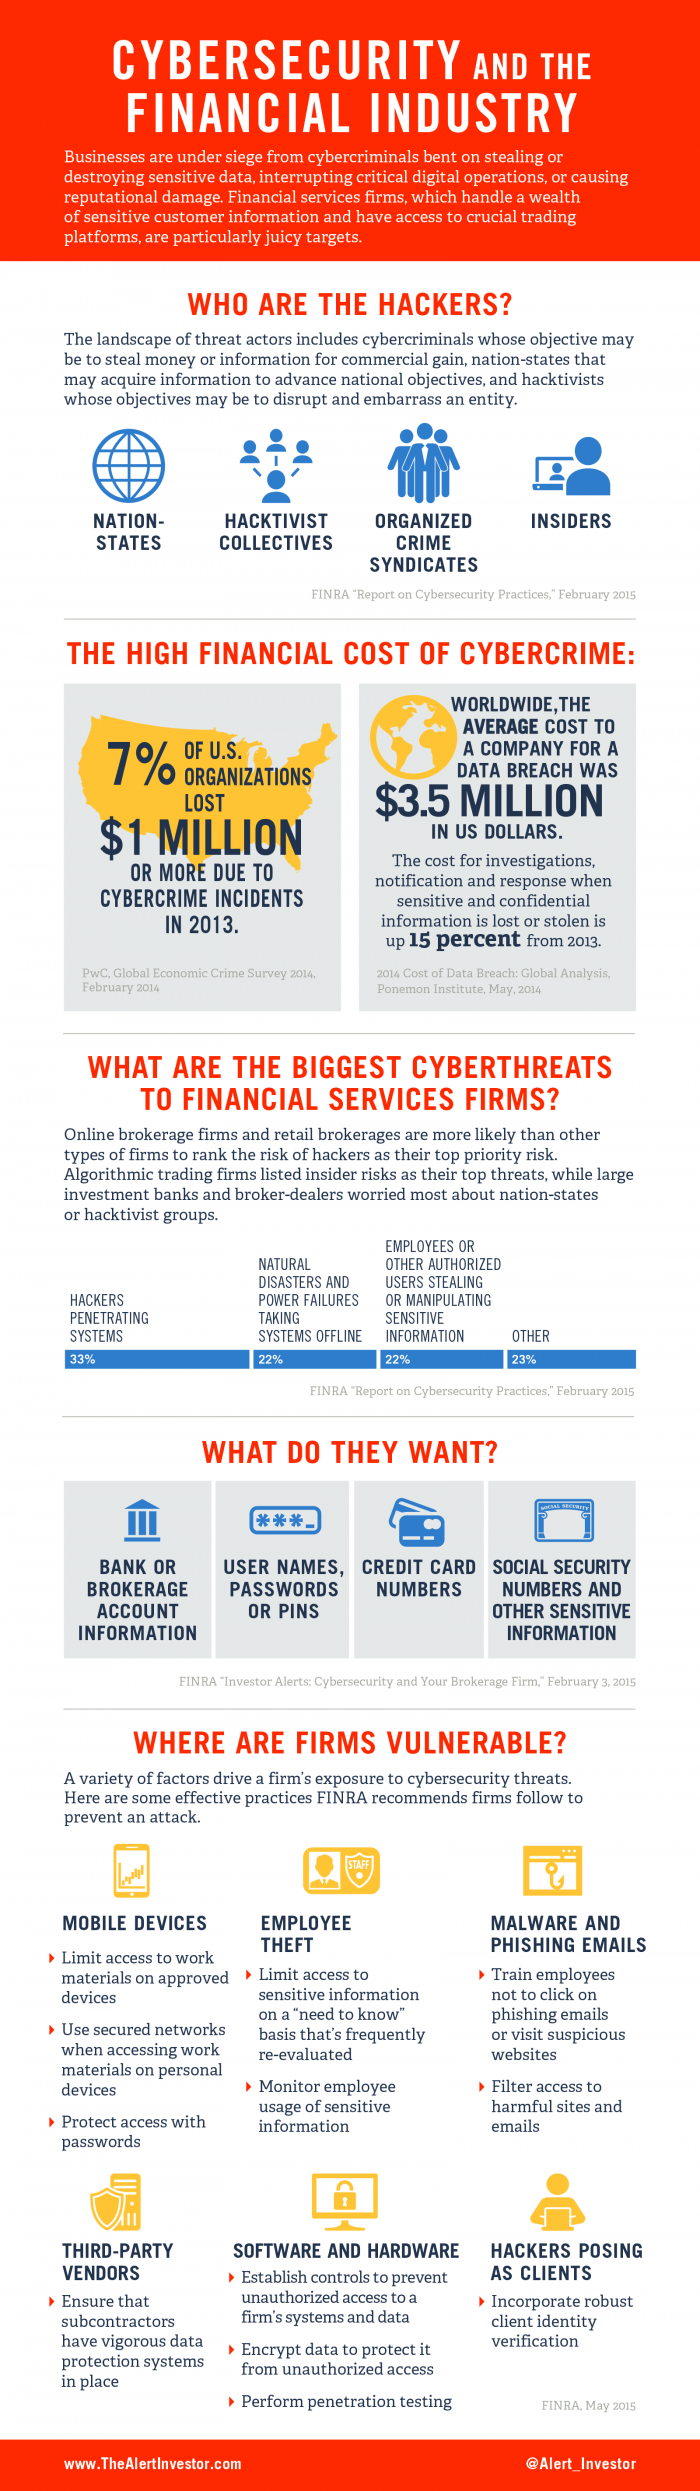 Cybersecurity and the Financial Industry